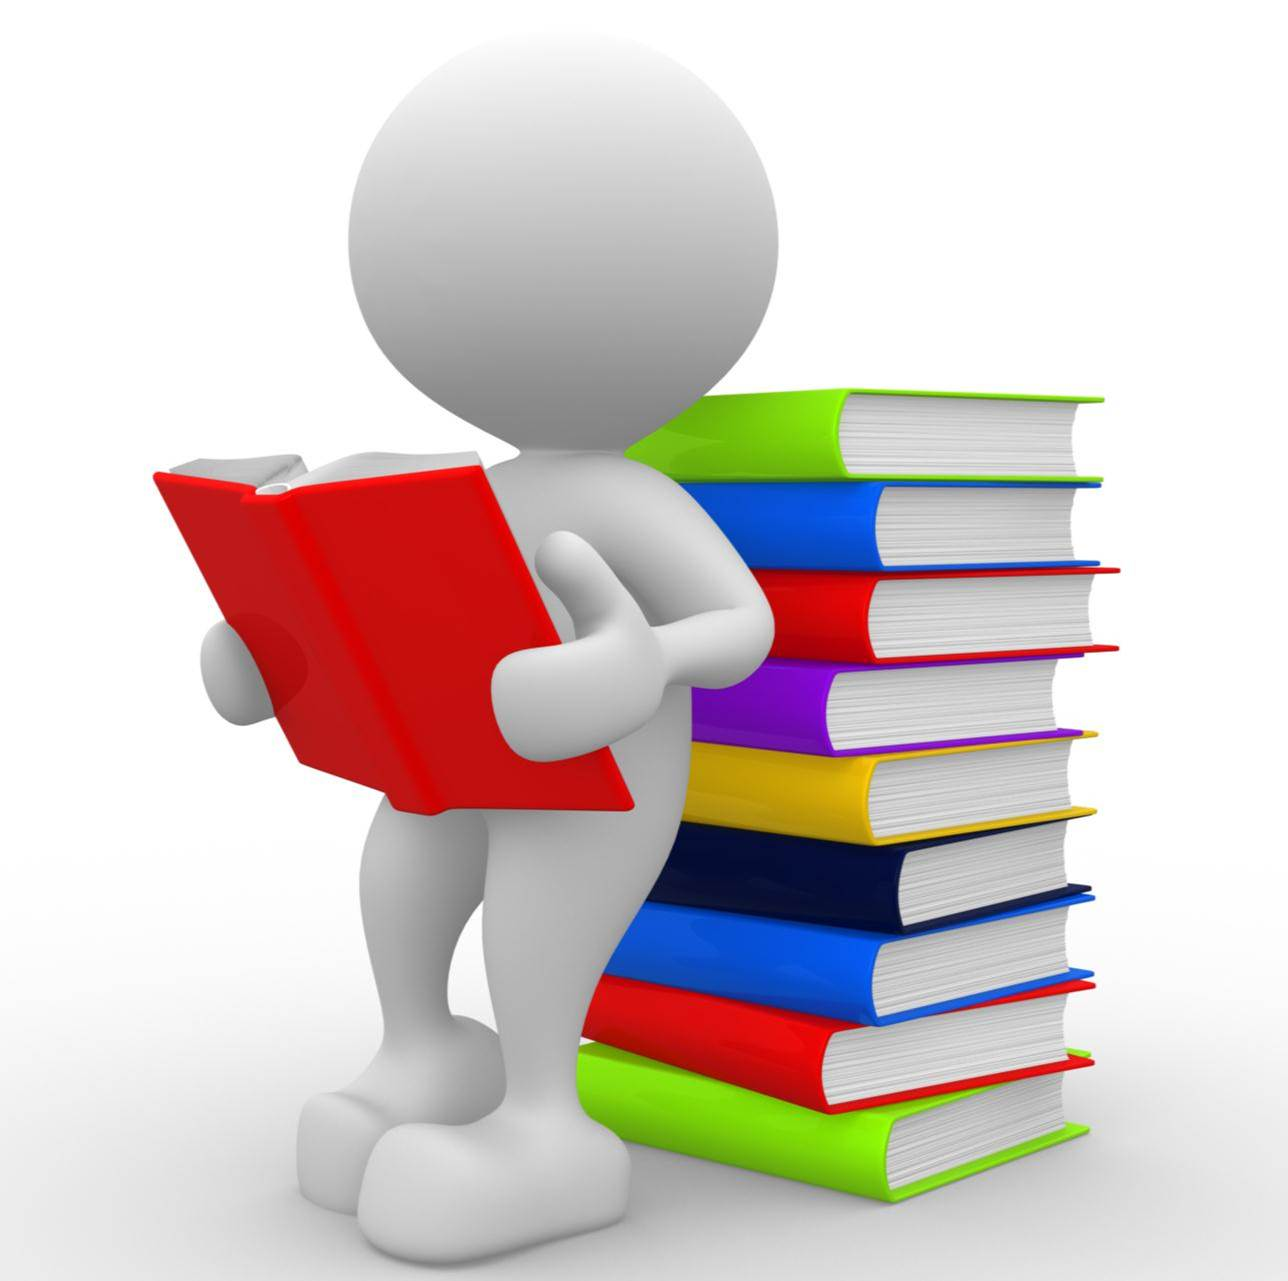 cartoon figure with stack of books